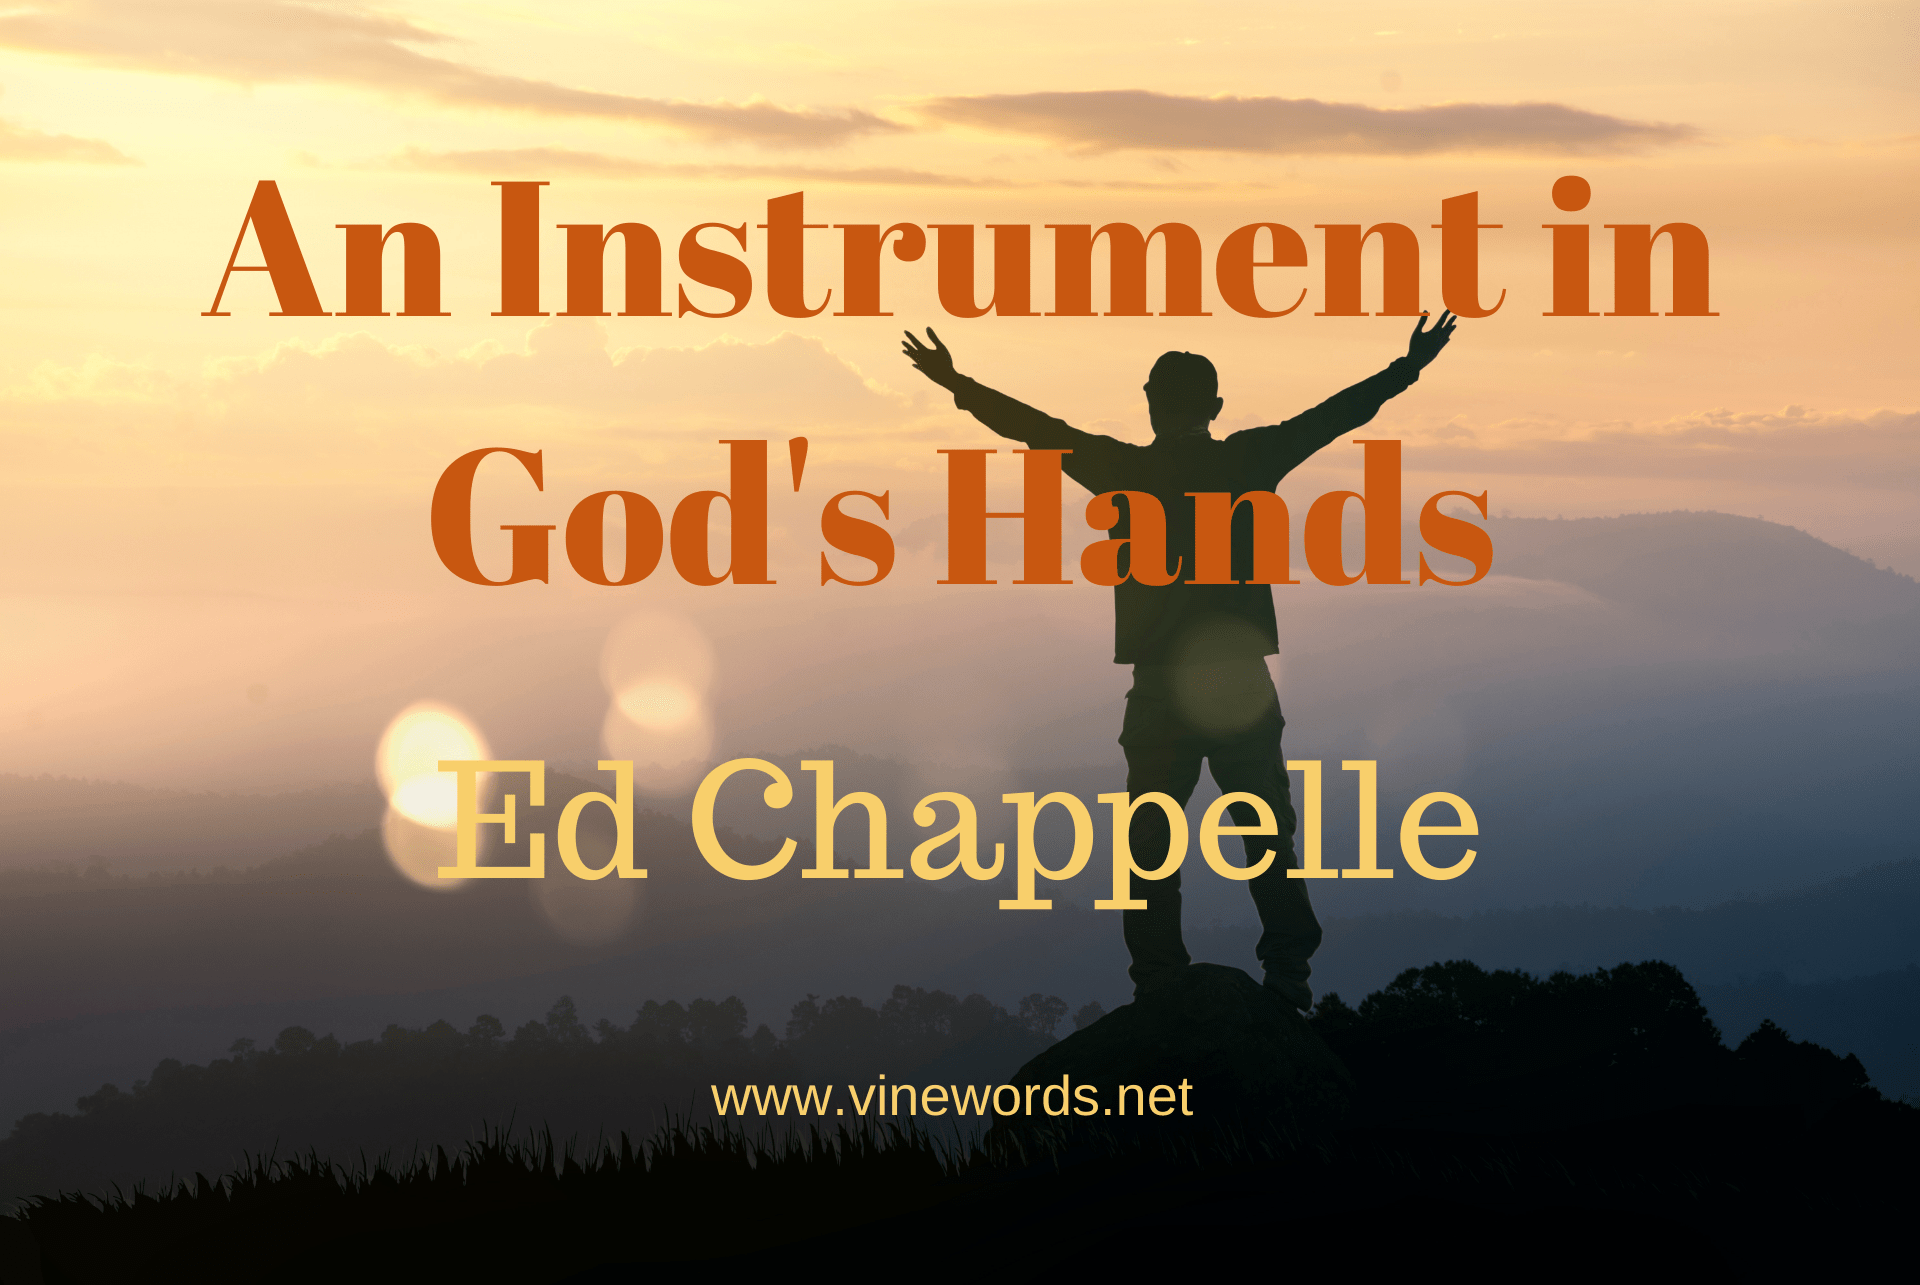 Ed Chappelle: An Instrument In God's Hands